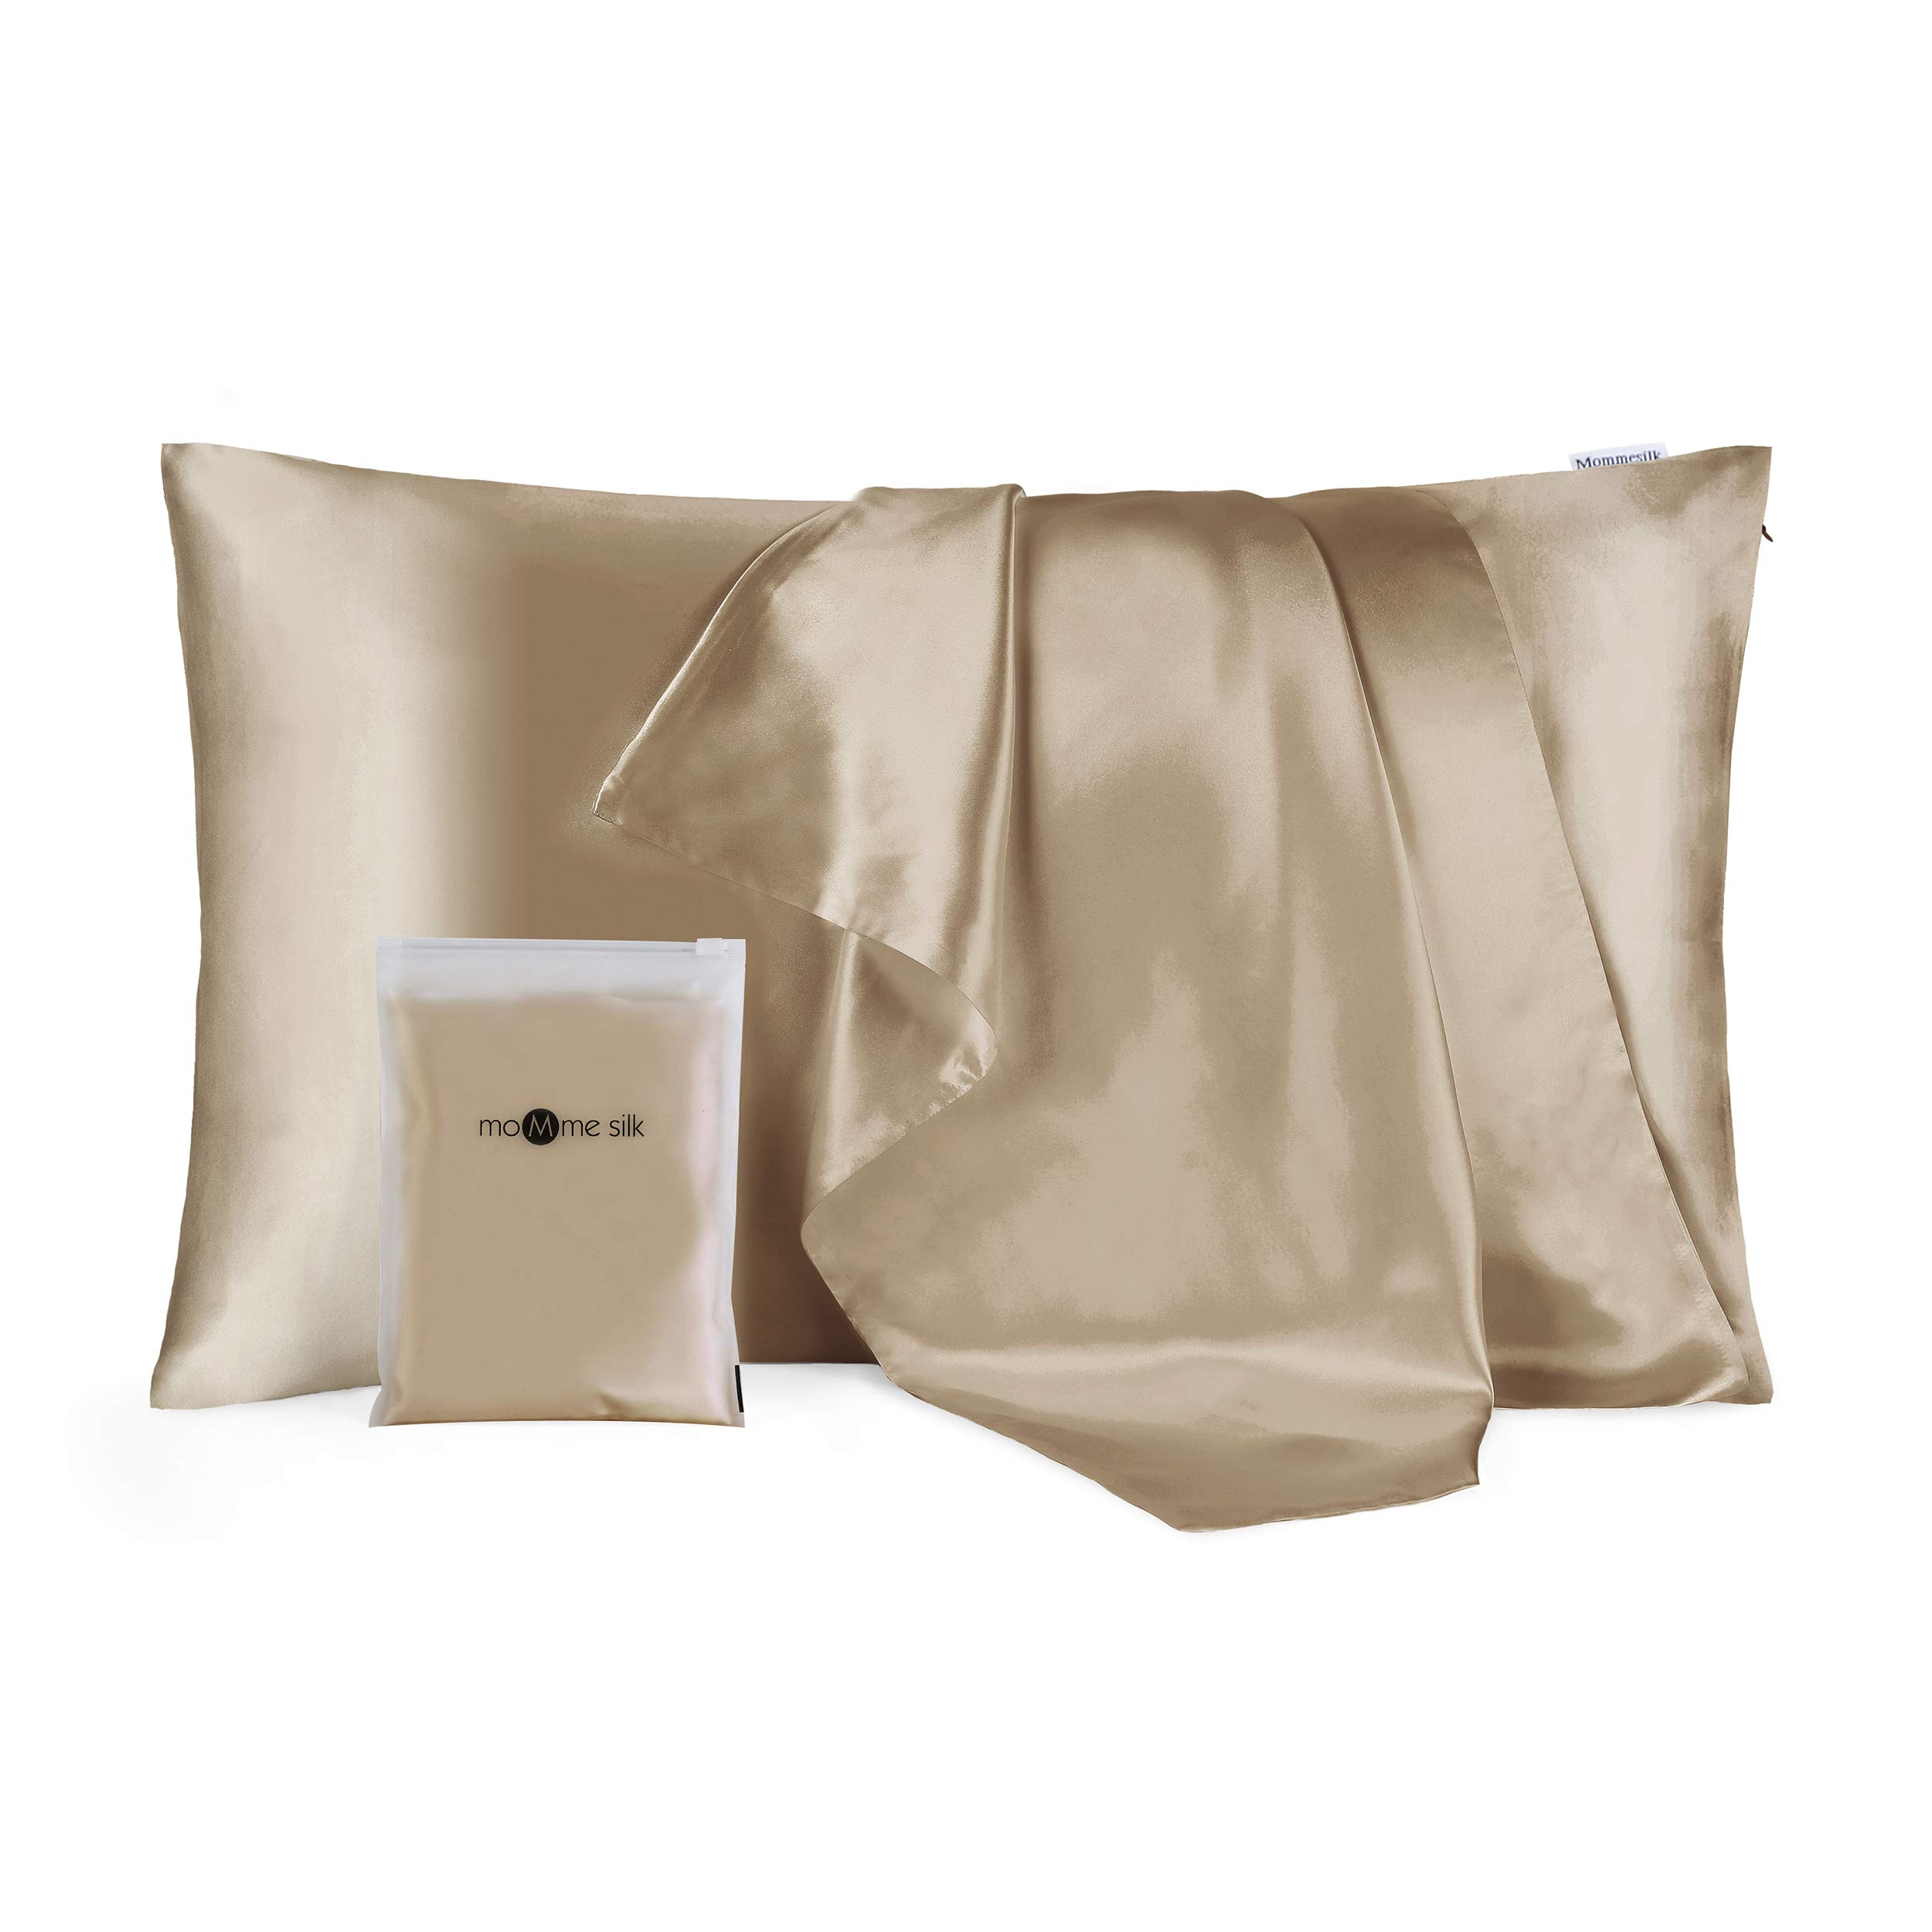 Mommesilk Silk Pillowcase for Hair and Skin Organic Real Silk 19 Momme Both Sides Silk Bed Pillow Cover with Hidden Zipper, 1 Pc (King Size, 20''x36'', Coffee)